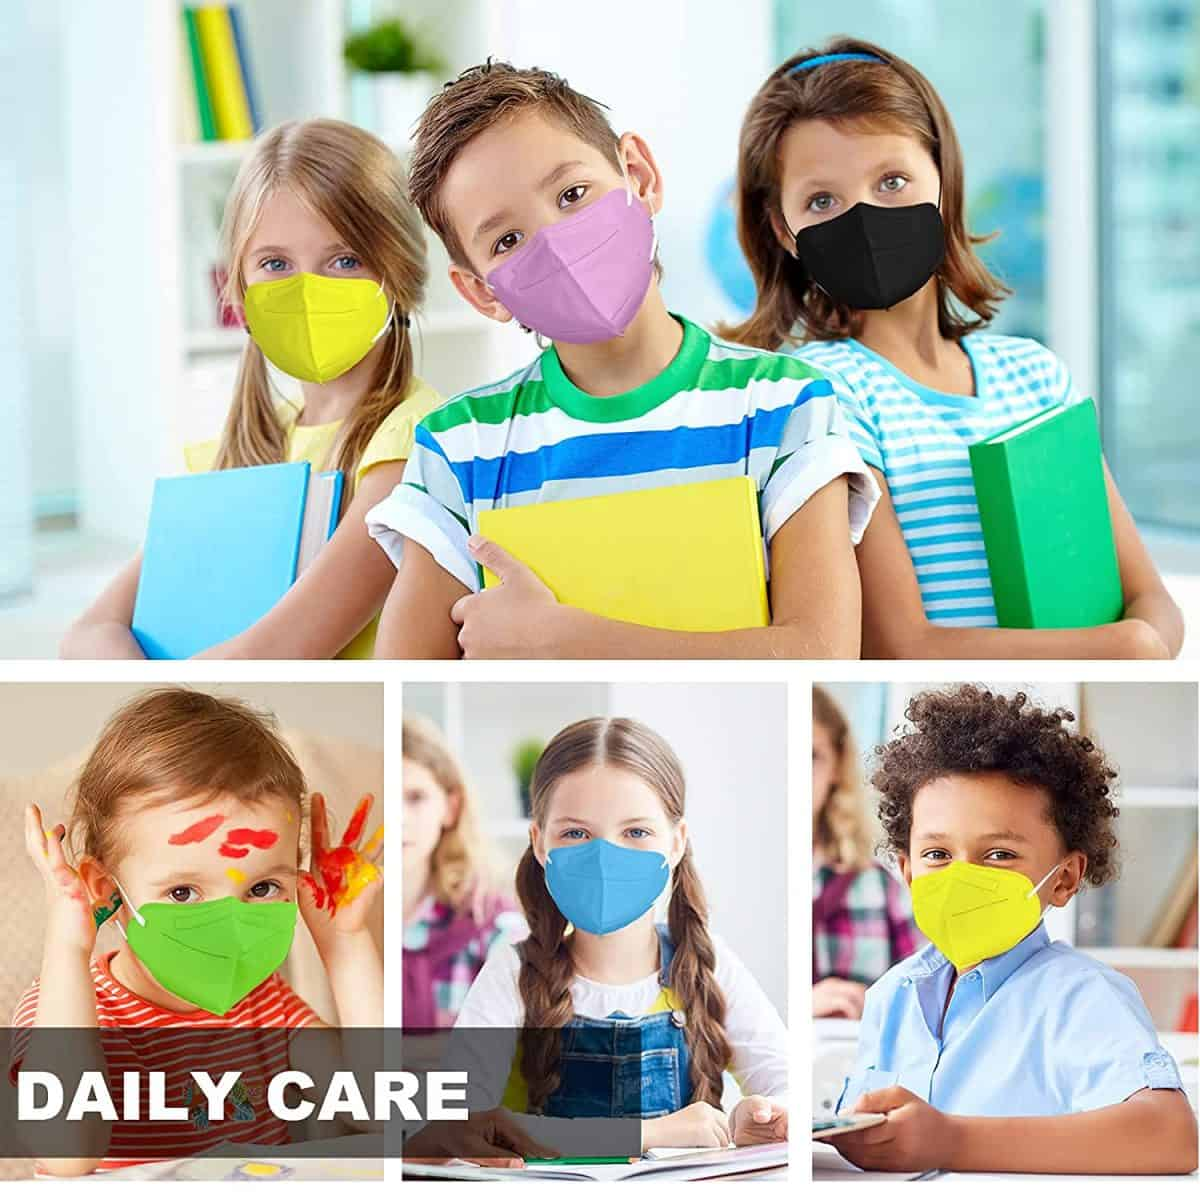 Kids KN95 Face Mask 25 Pack, KN95 Mask for Kids 5 Layers Cup Dust Mask with Adjustable Ear Loop, Multicolored Disposable Face Masks Respirator Protection for Children 7